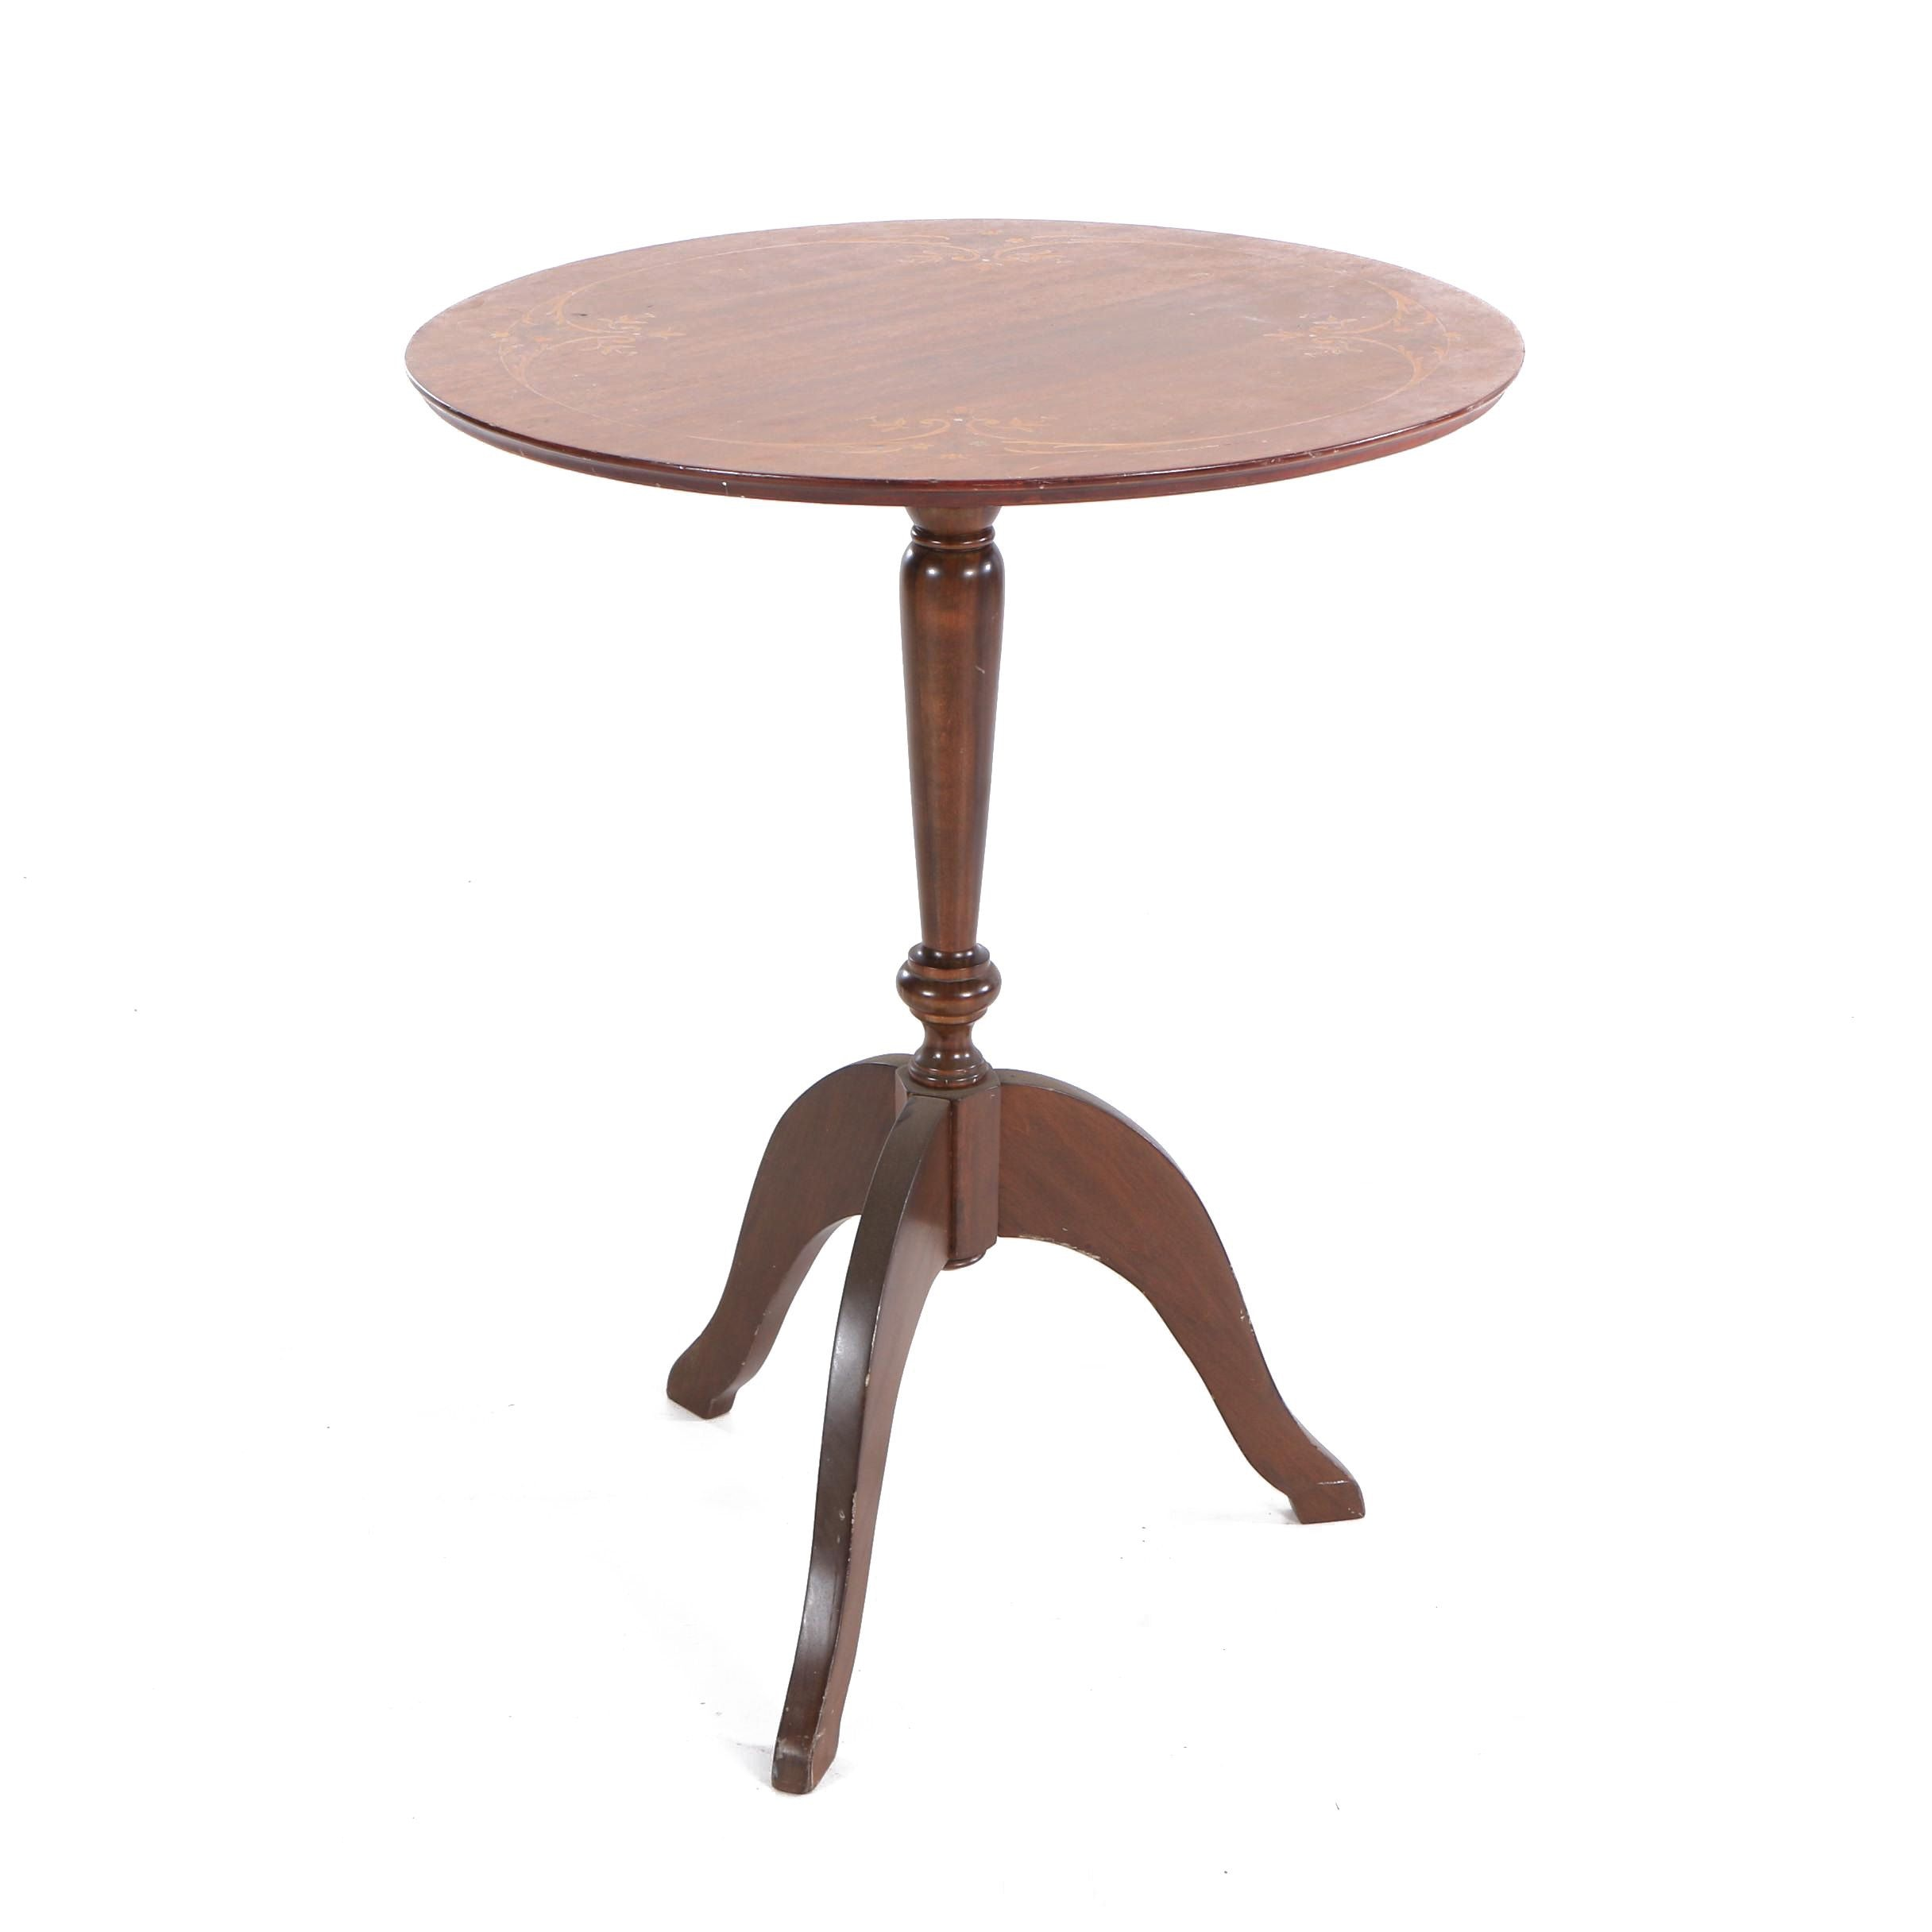 Floral Marquetry and Mother-of-Pearl Inlay Tilt Top Table